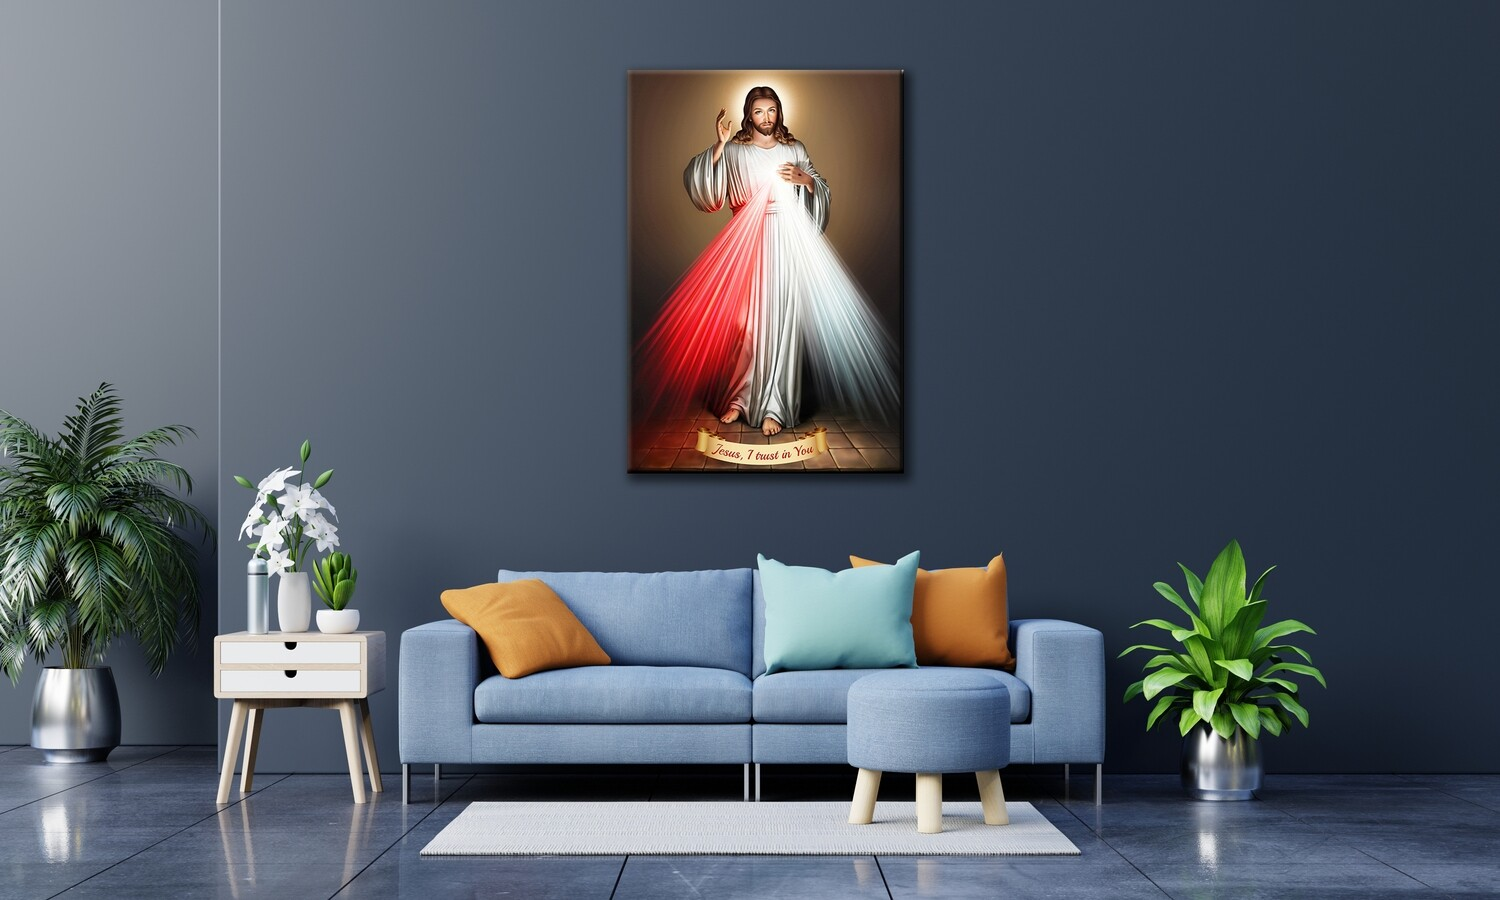 Divine Mercy Painting Brown -Christian Wallart -Jesus Divine Mercy Picture Printed on Frameless Acrylic Glass- Ready To Hang